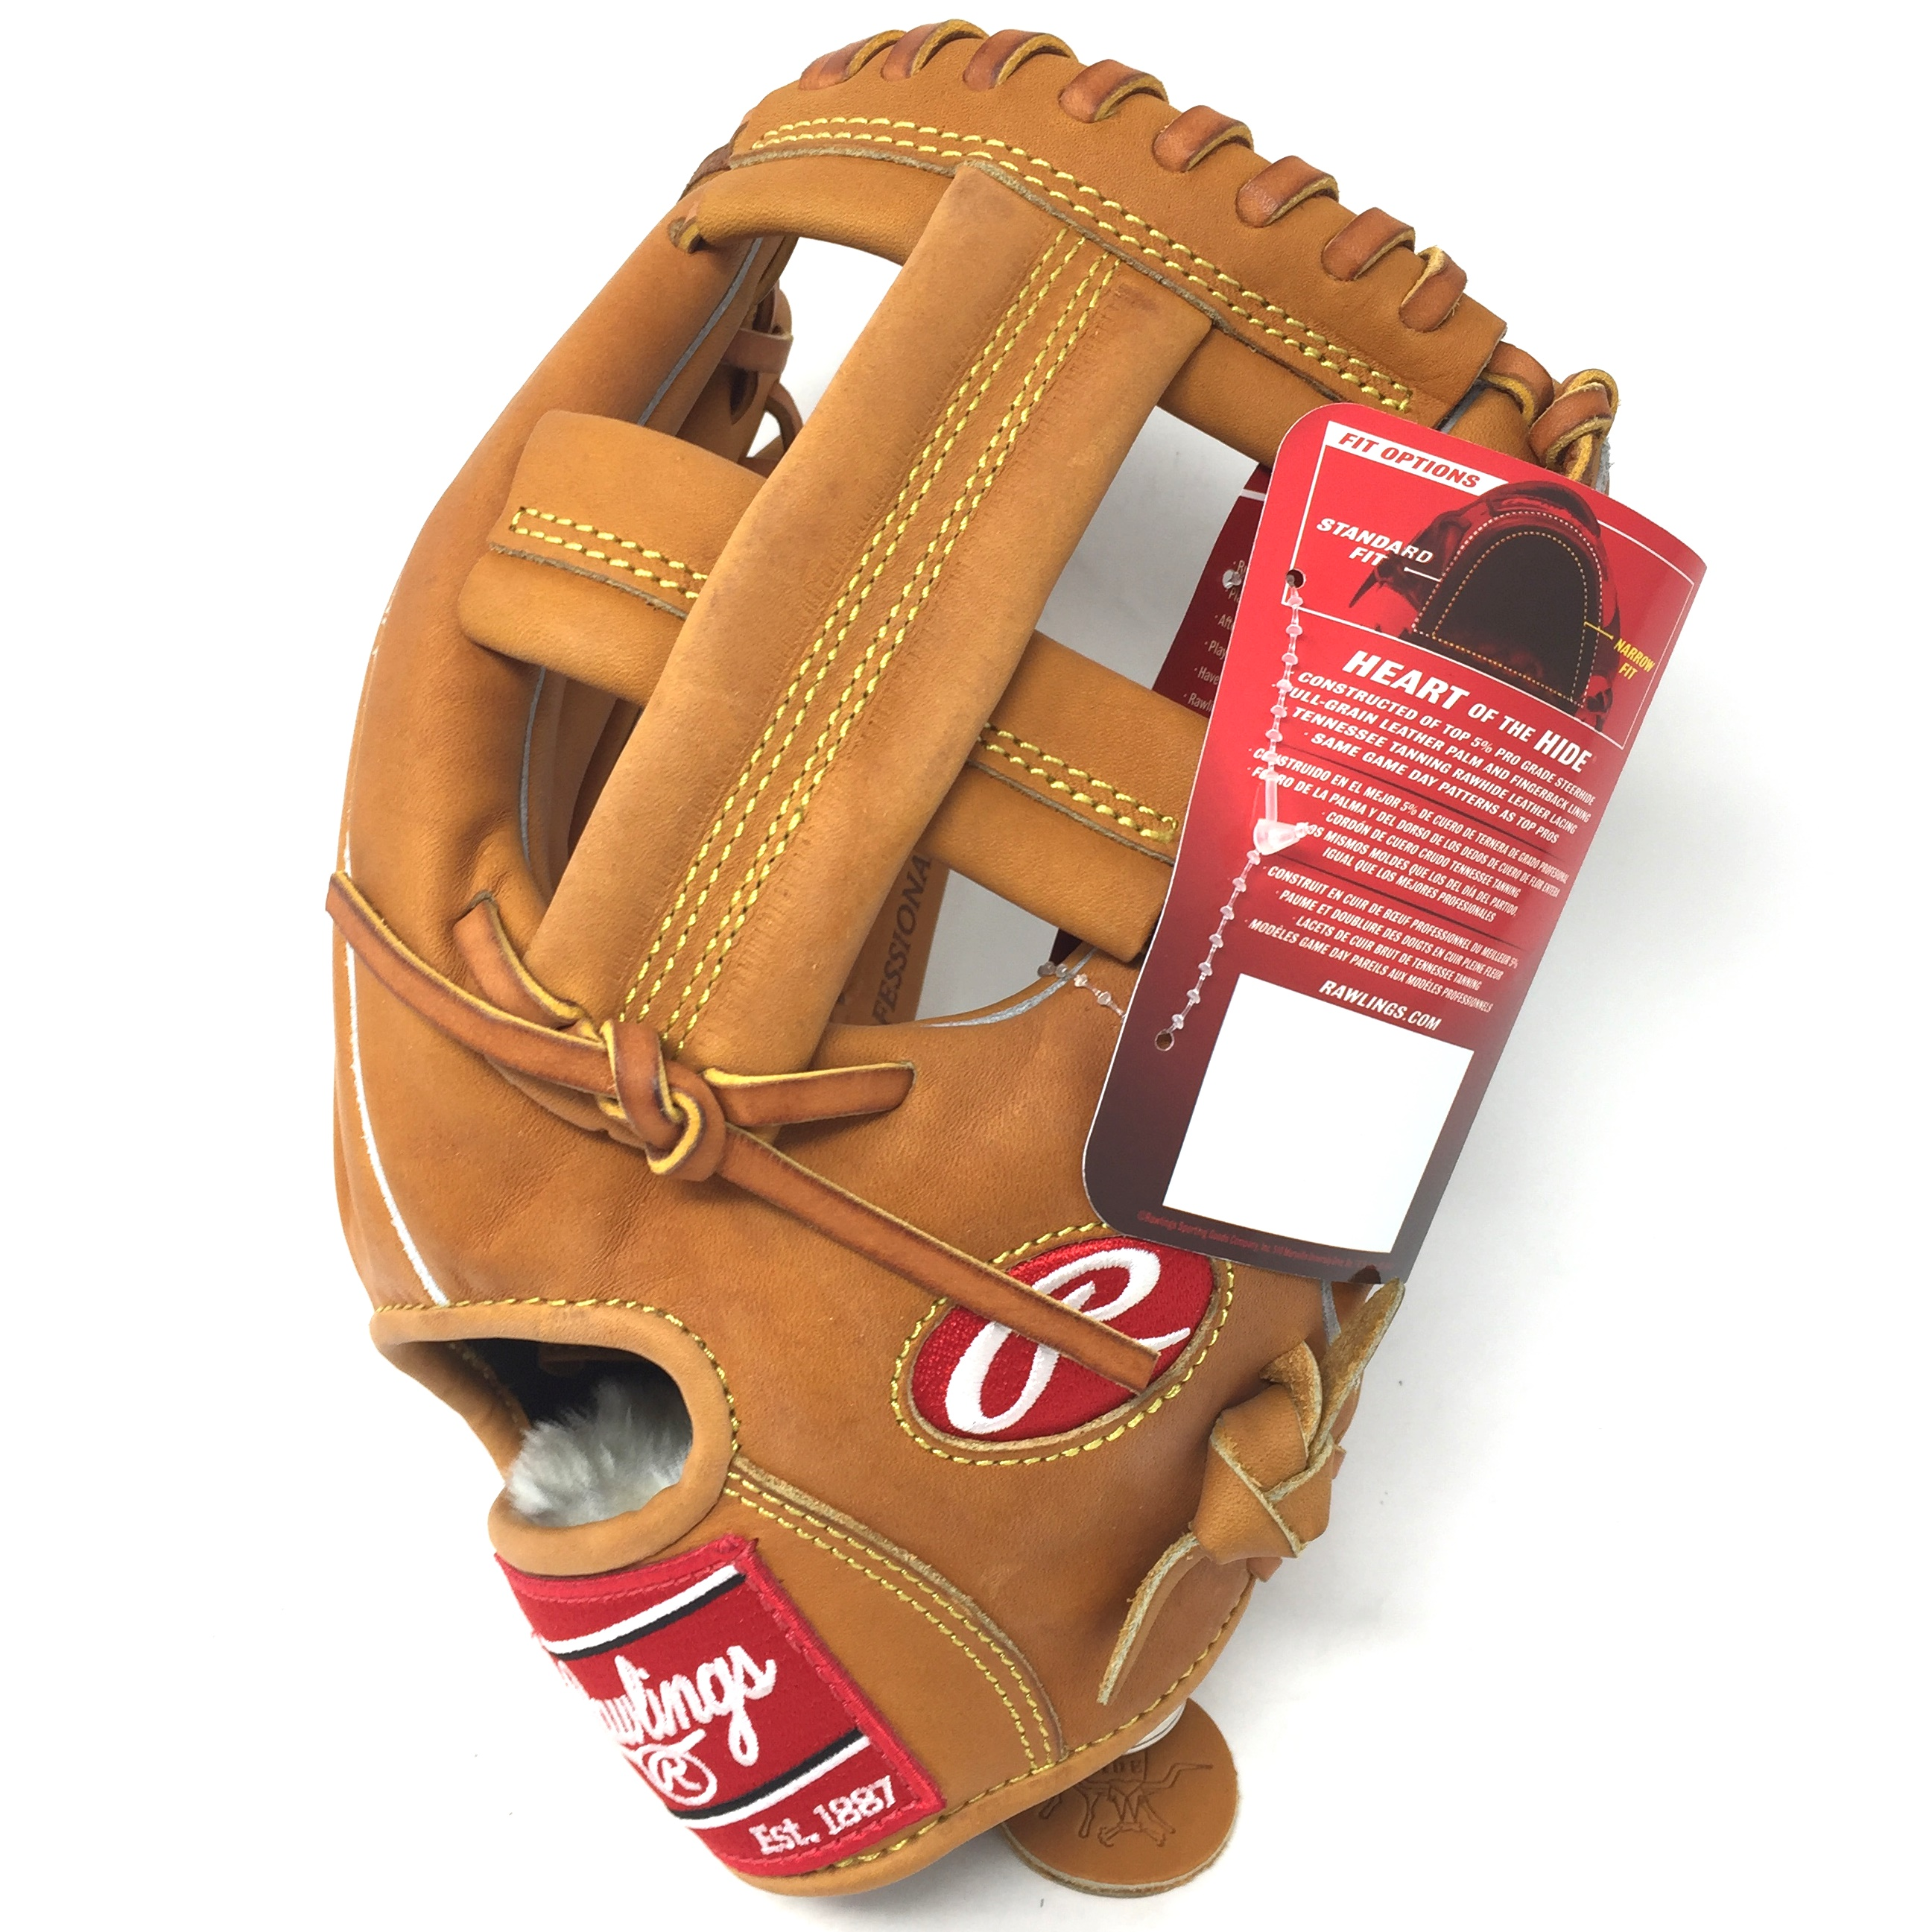 rawlings-hoh-prospt-baseball-glove-horween-leather-11-75-right-hand-throw PROSPT-18-RightHandThrow Rawlings  The Rawlings PROSPT Heart of the Hide Baseball Glove is 11.75